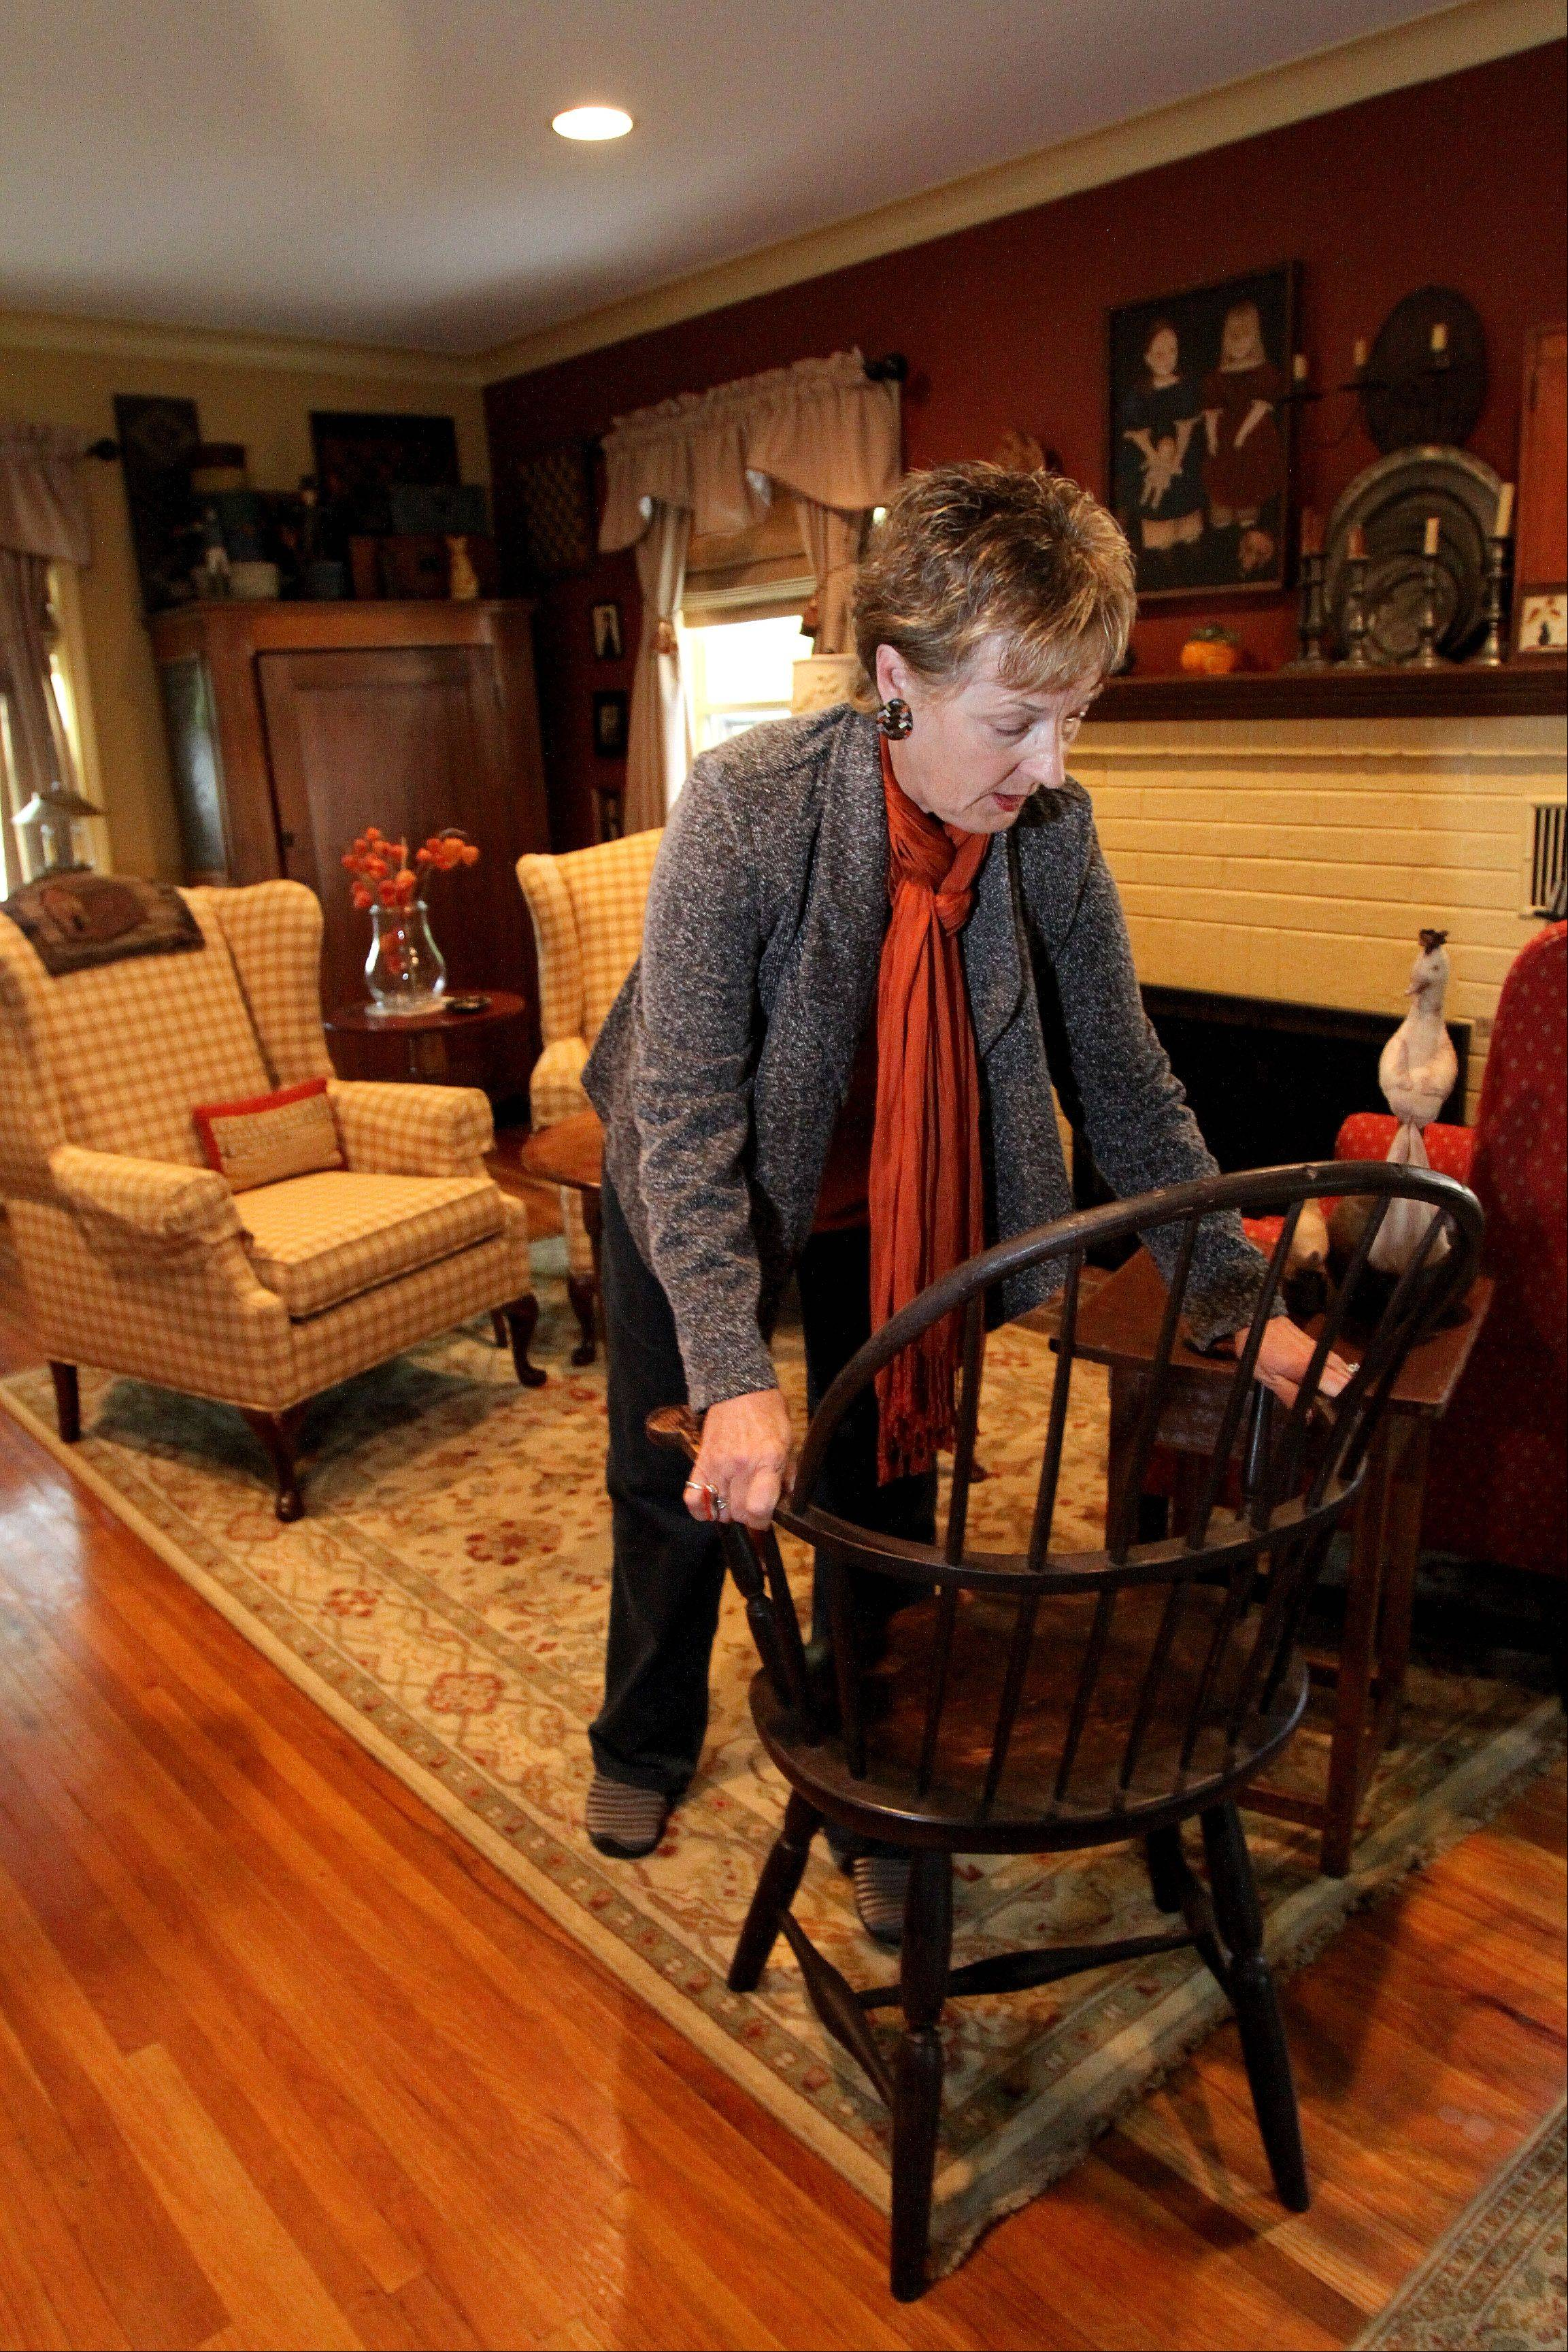 Linda Buehrer of Downers Grove shows her favorite chair, a Windsor from the 1780s. She bought the chair at a previous Fox Valley Antiques Show.